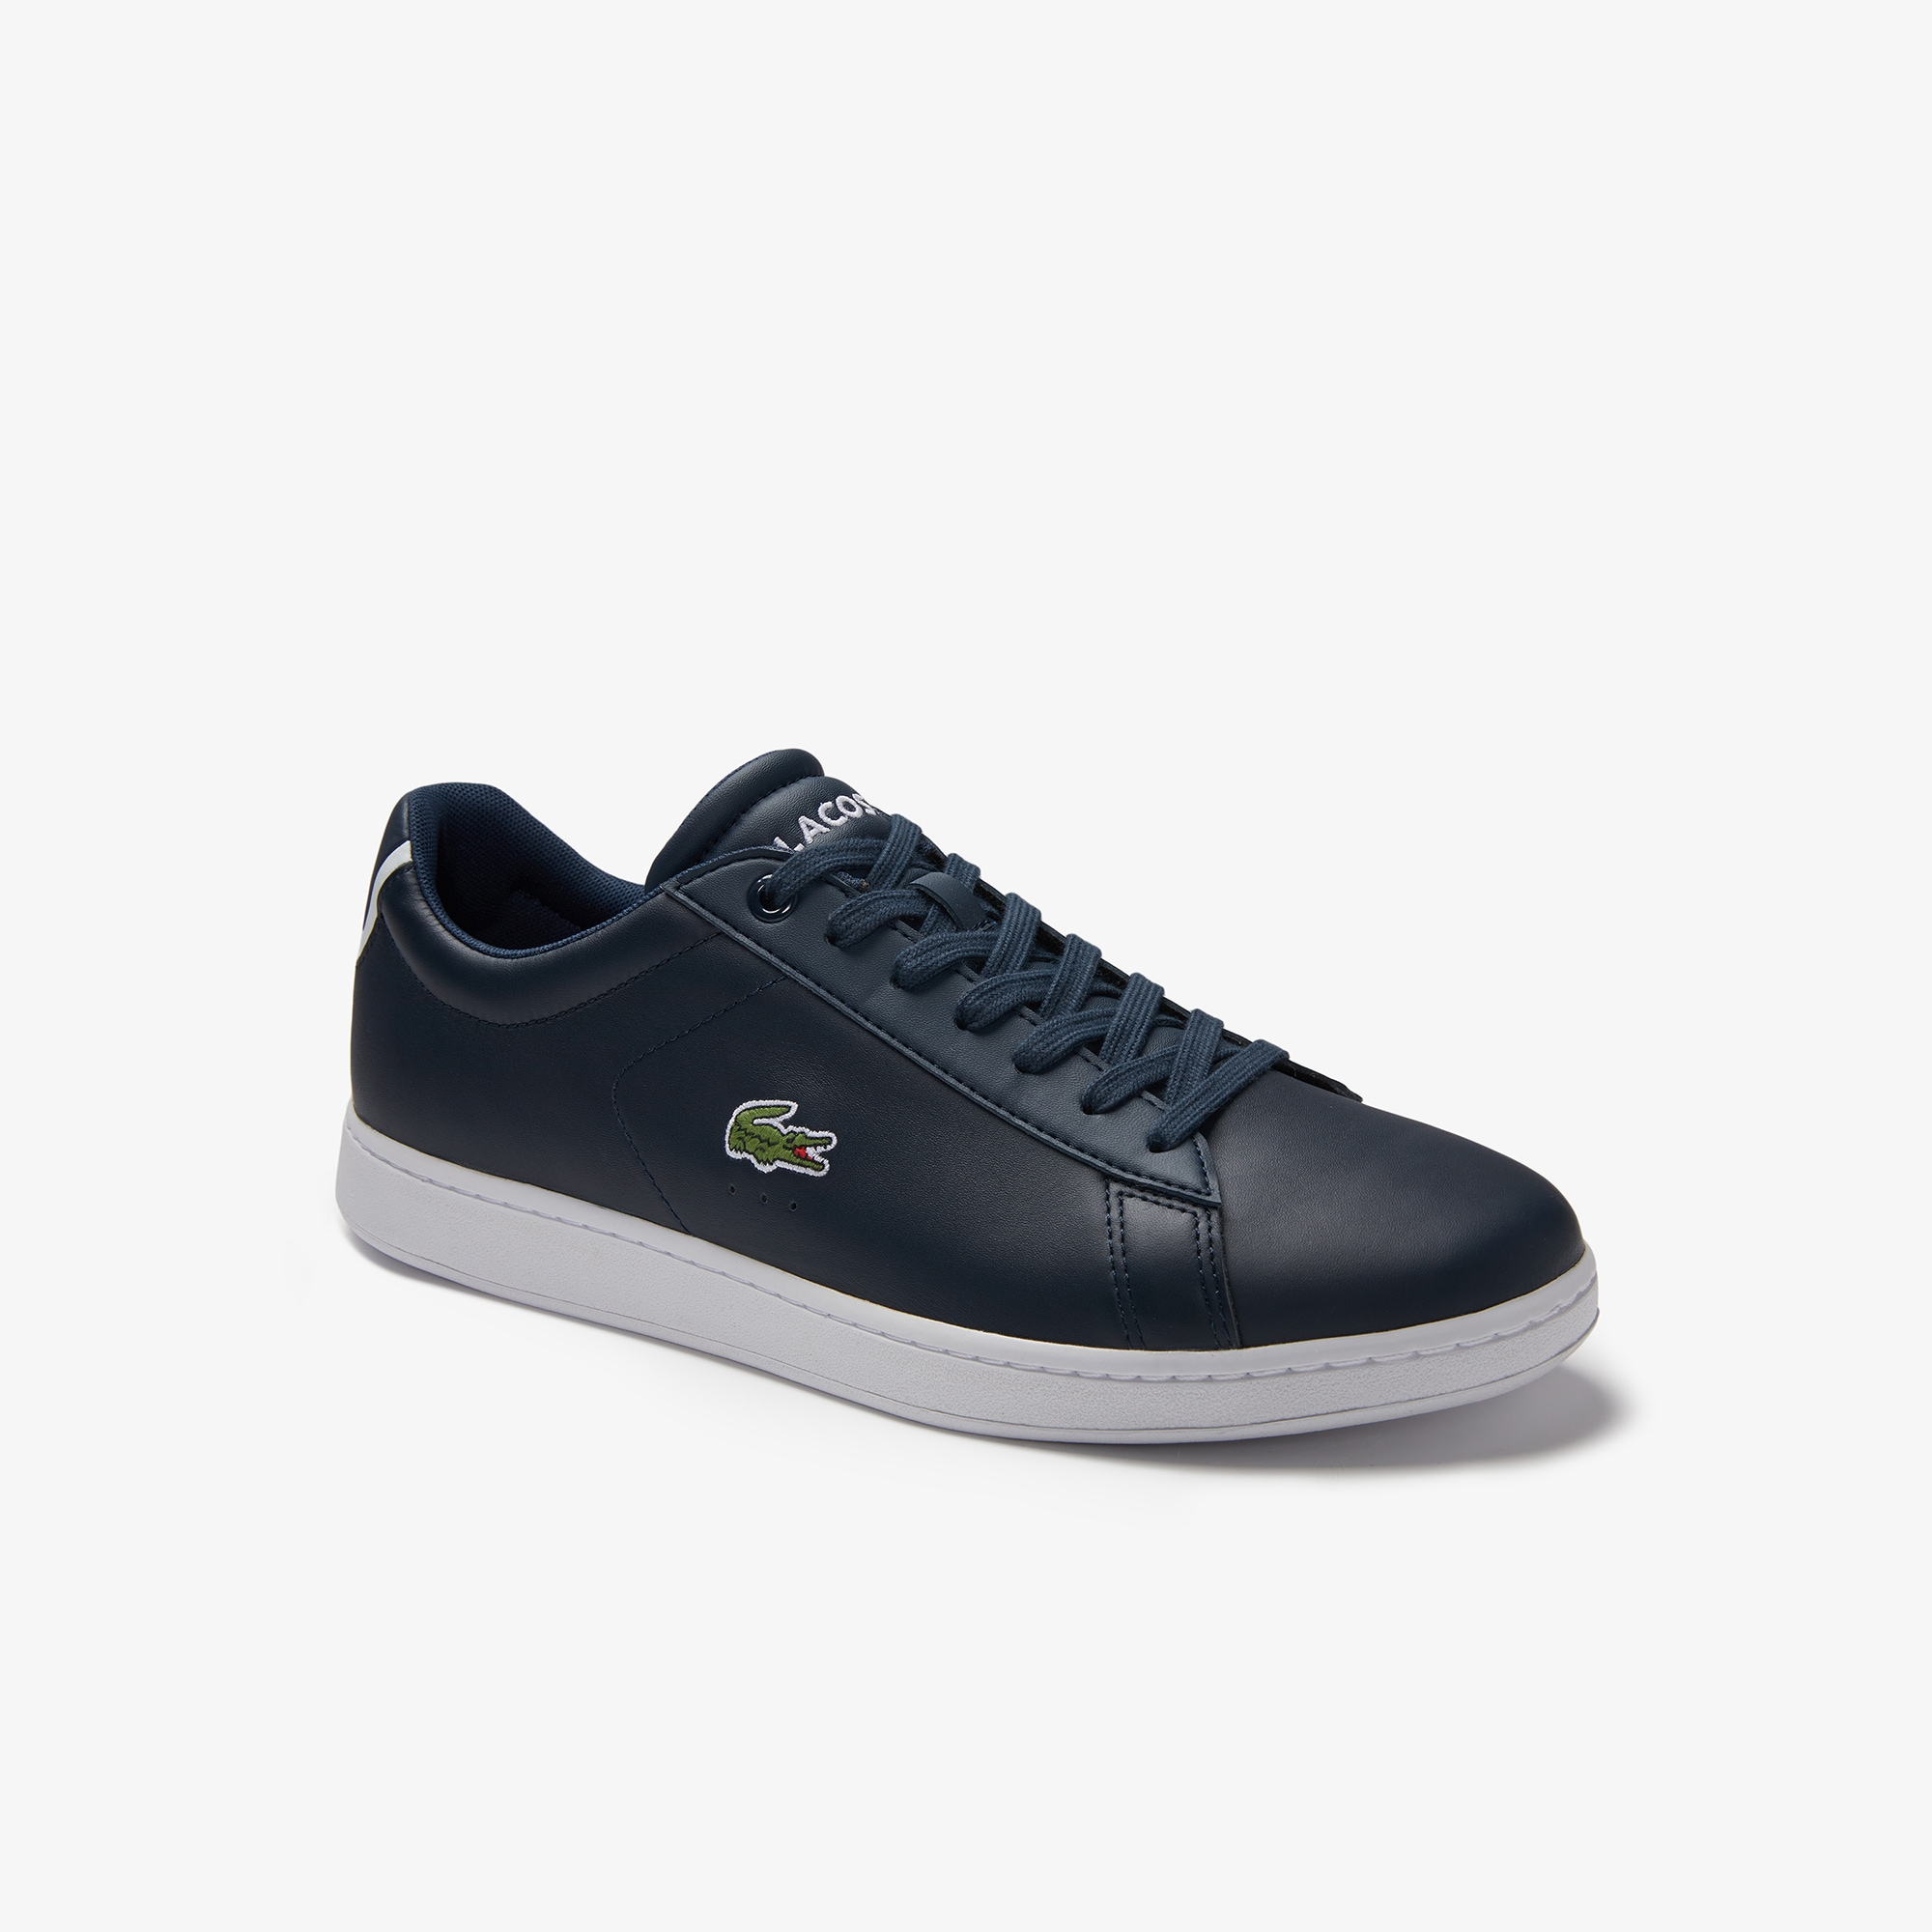 Men's Carnaby Evo Contrast Accent Leather Trainers